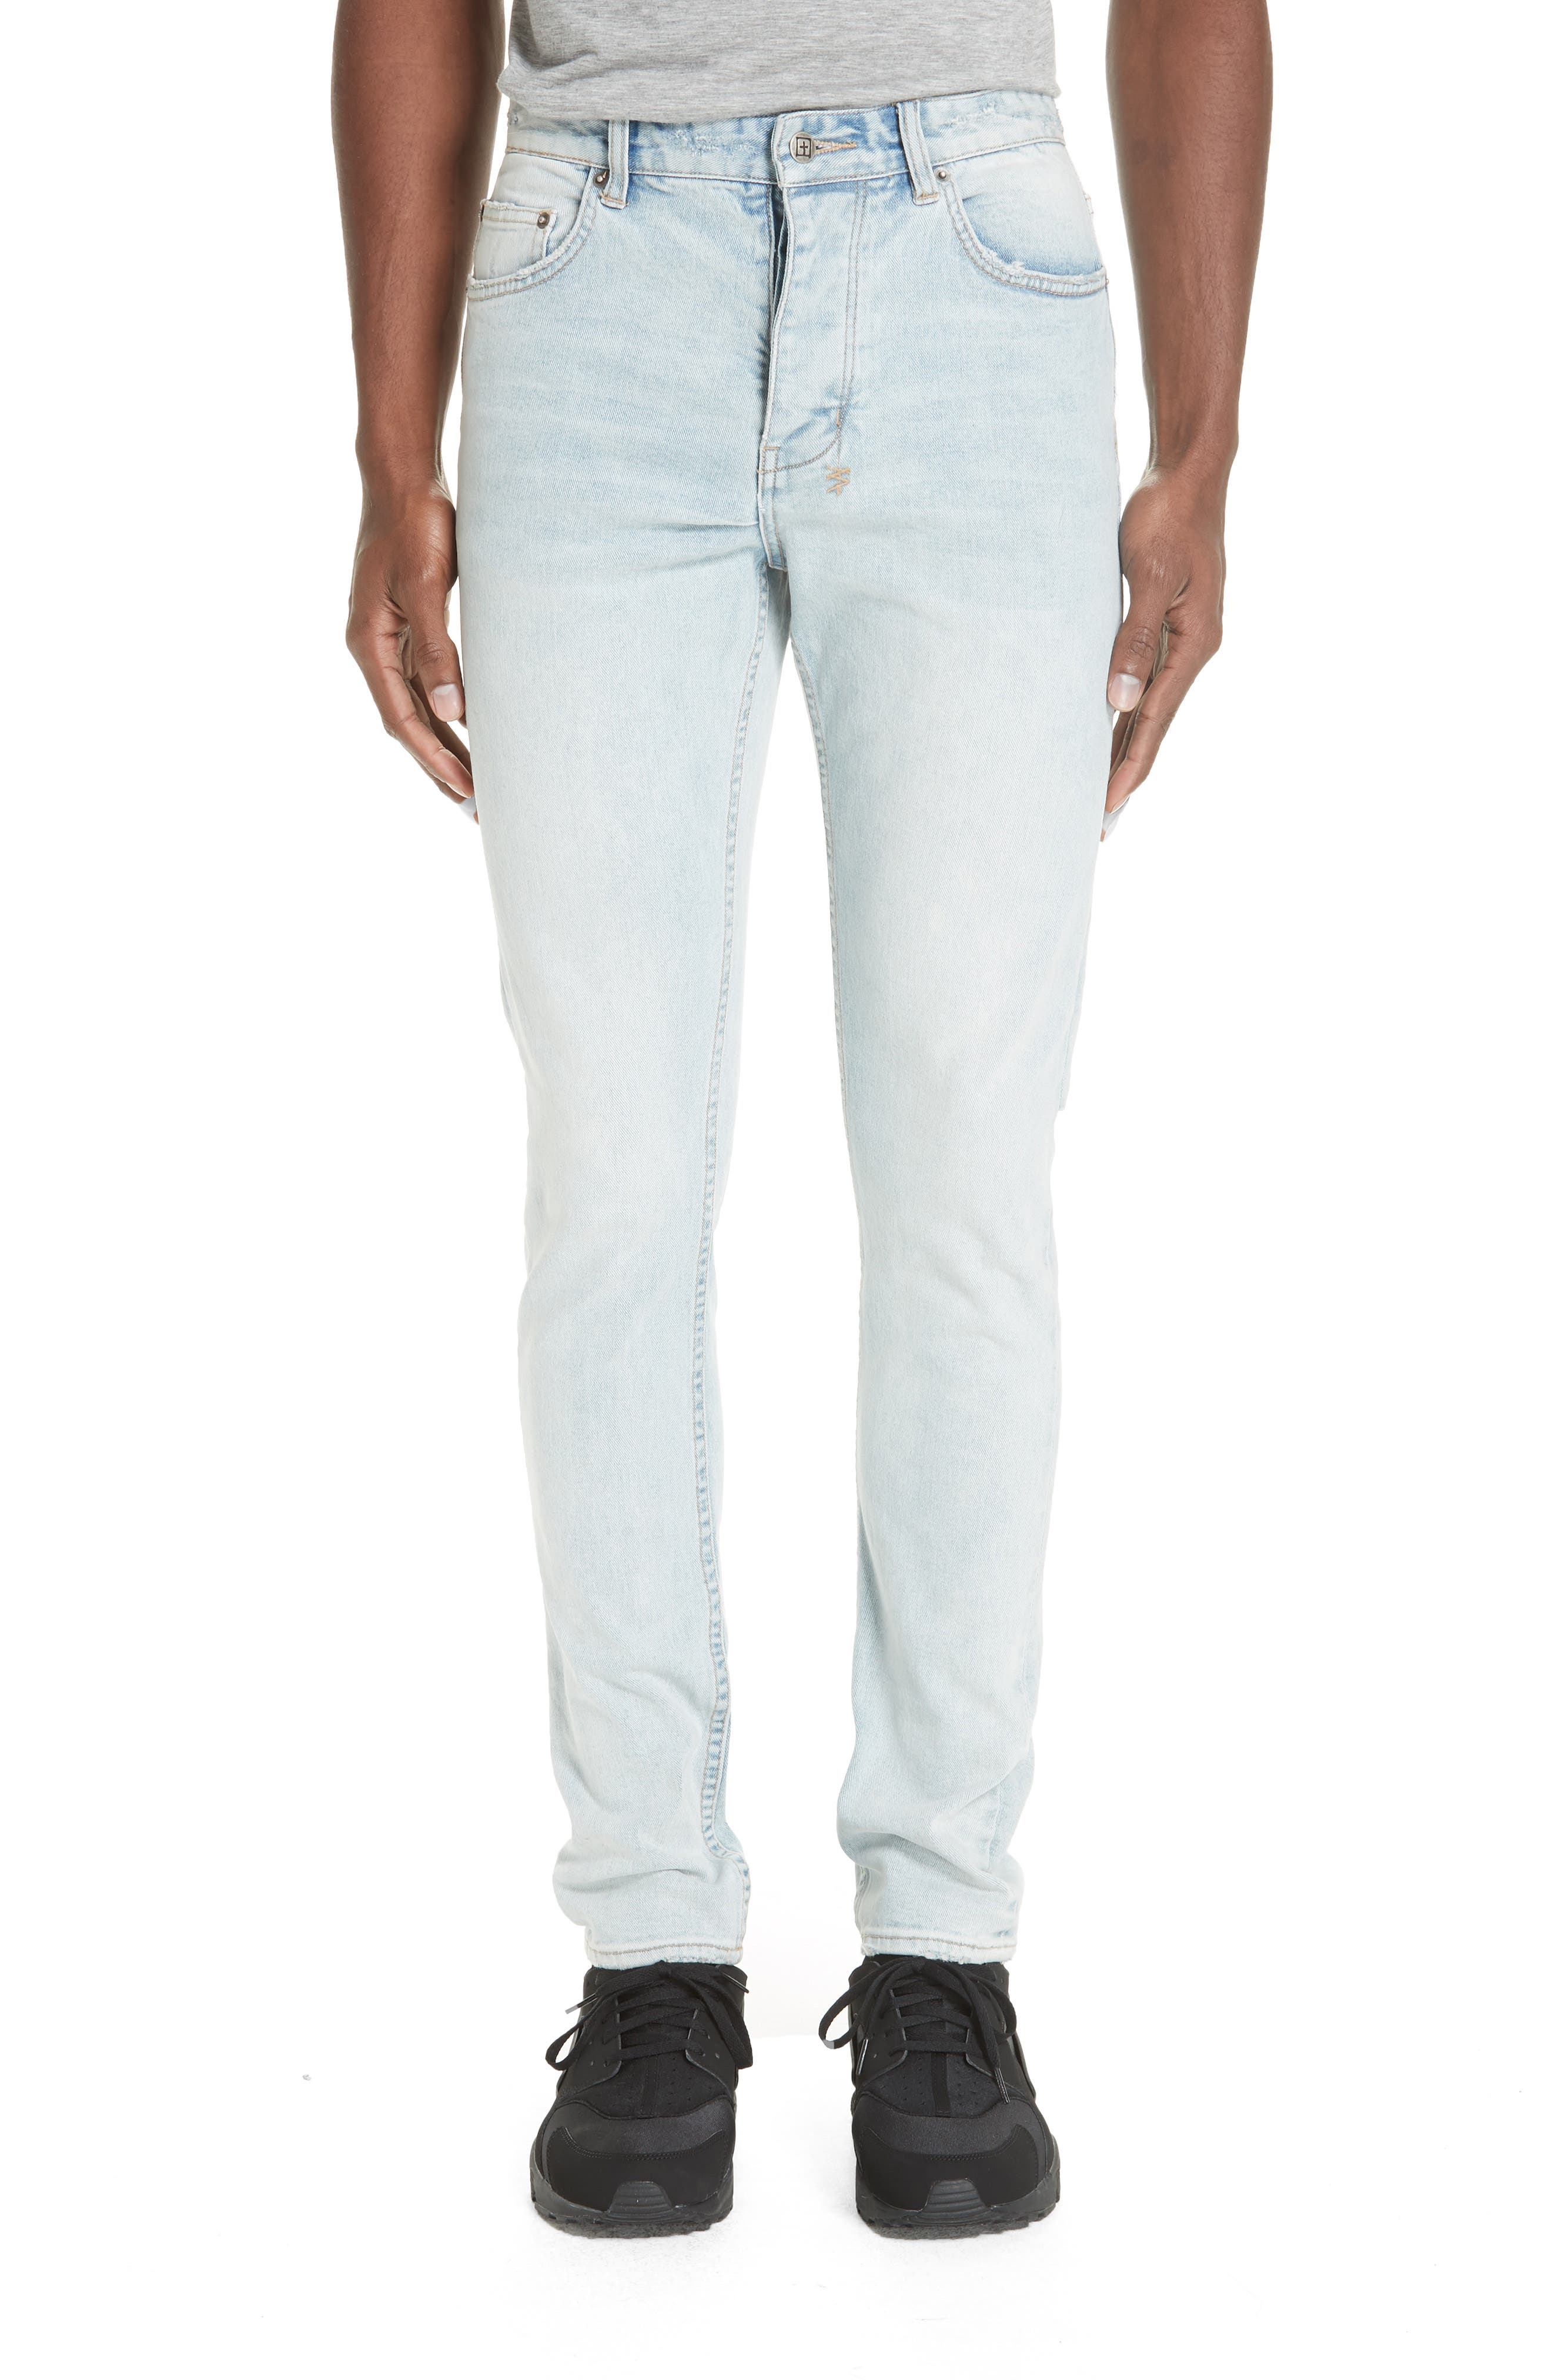 Chitch Chillz Skinny Fit Jeans,                         Main,                         color, 450